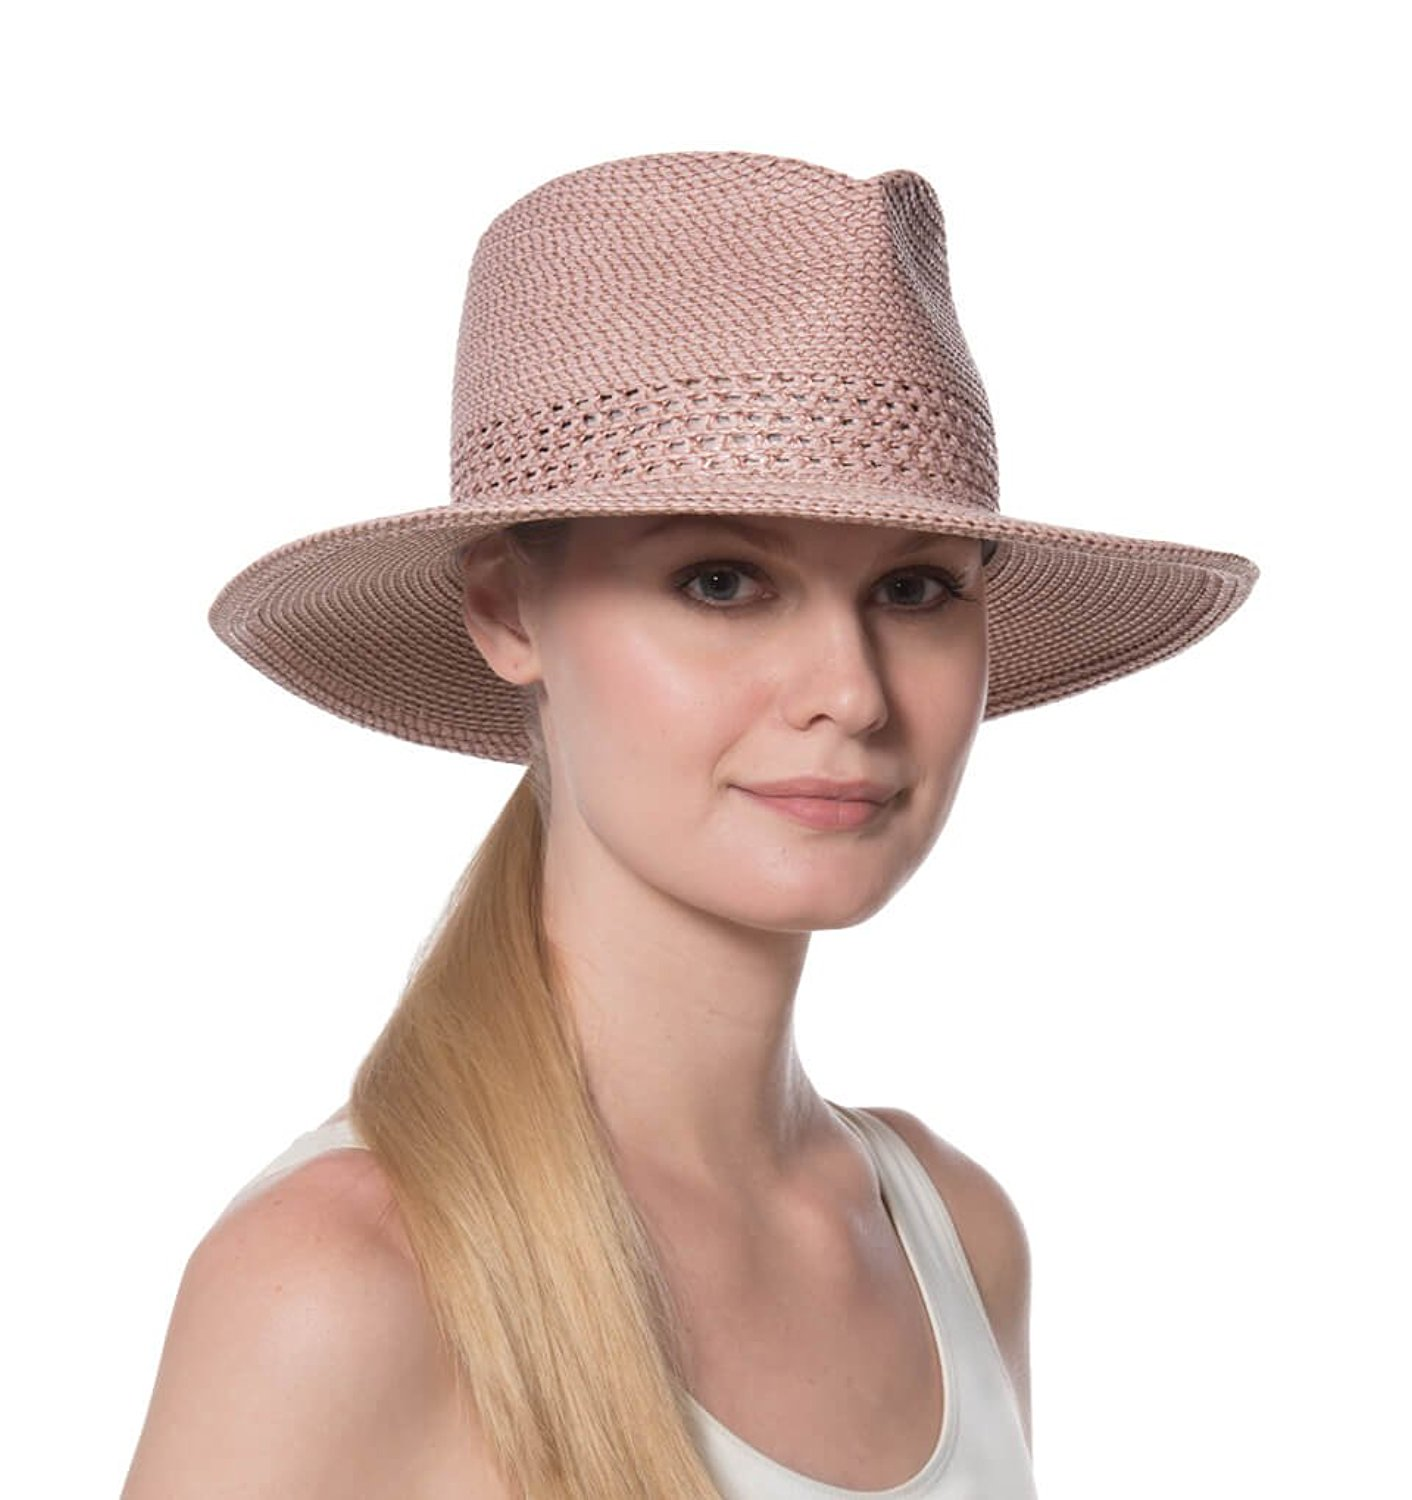 d1dc24f2794 Get Quotations · Eric Javits Fashion Designer Women s Headwear Hat -  Squishee Bayou